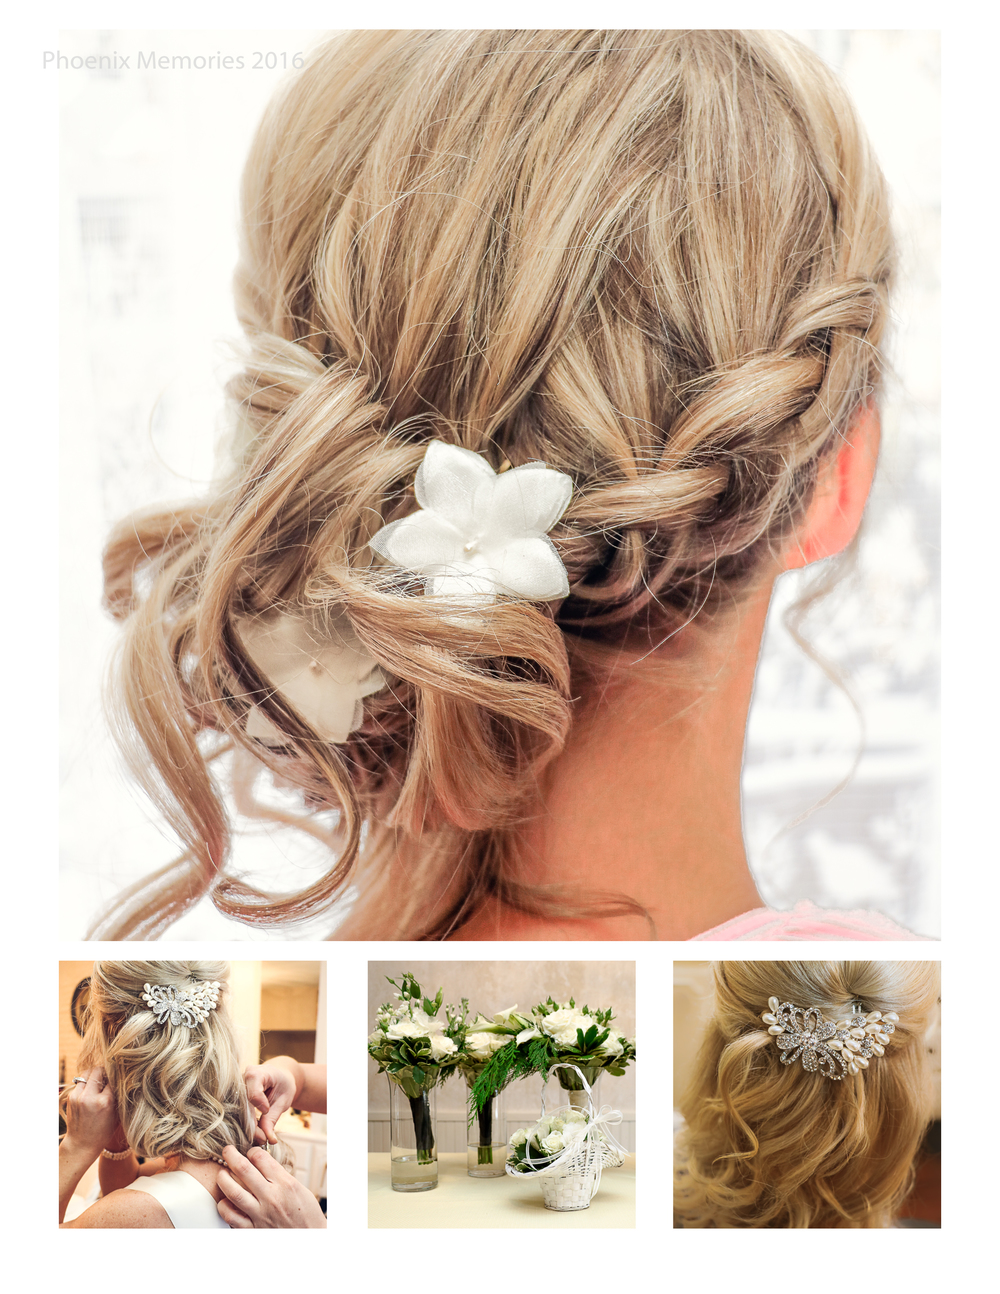 The Bride adorned her  up-swepped hair with an elegant jeweled hairpiece, and her Bridesmaids chose different styles to fit their personalities, Cassandra (pictured above), chose a braided up-do with sweet white flowers embedded.  Hair & Makeup by Katie Klett . Flowers by  Wisteria Design Studio